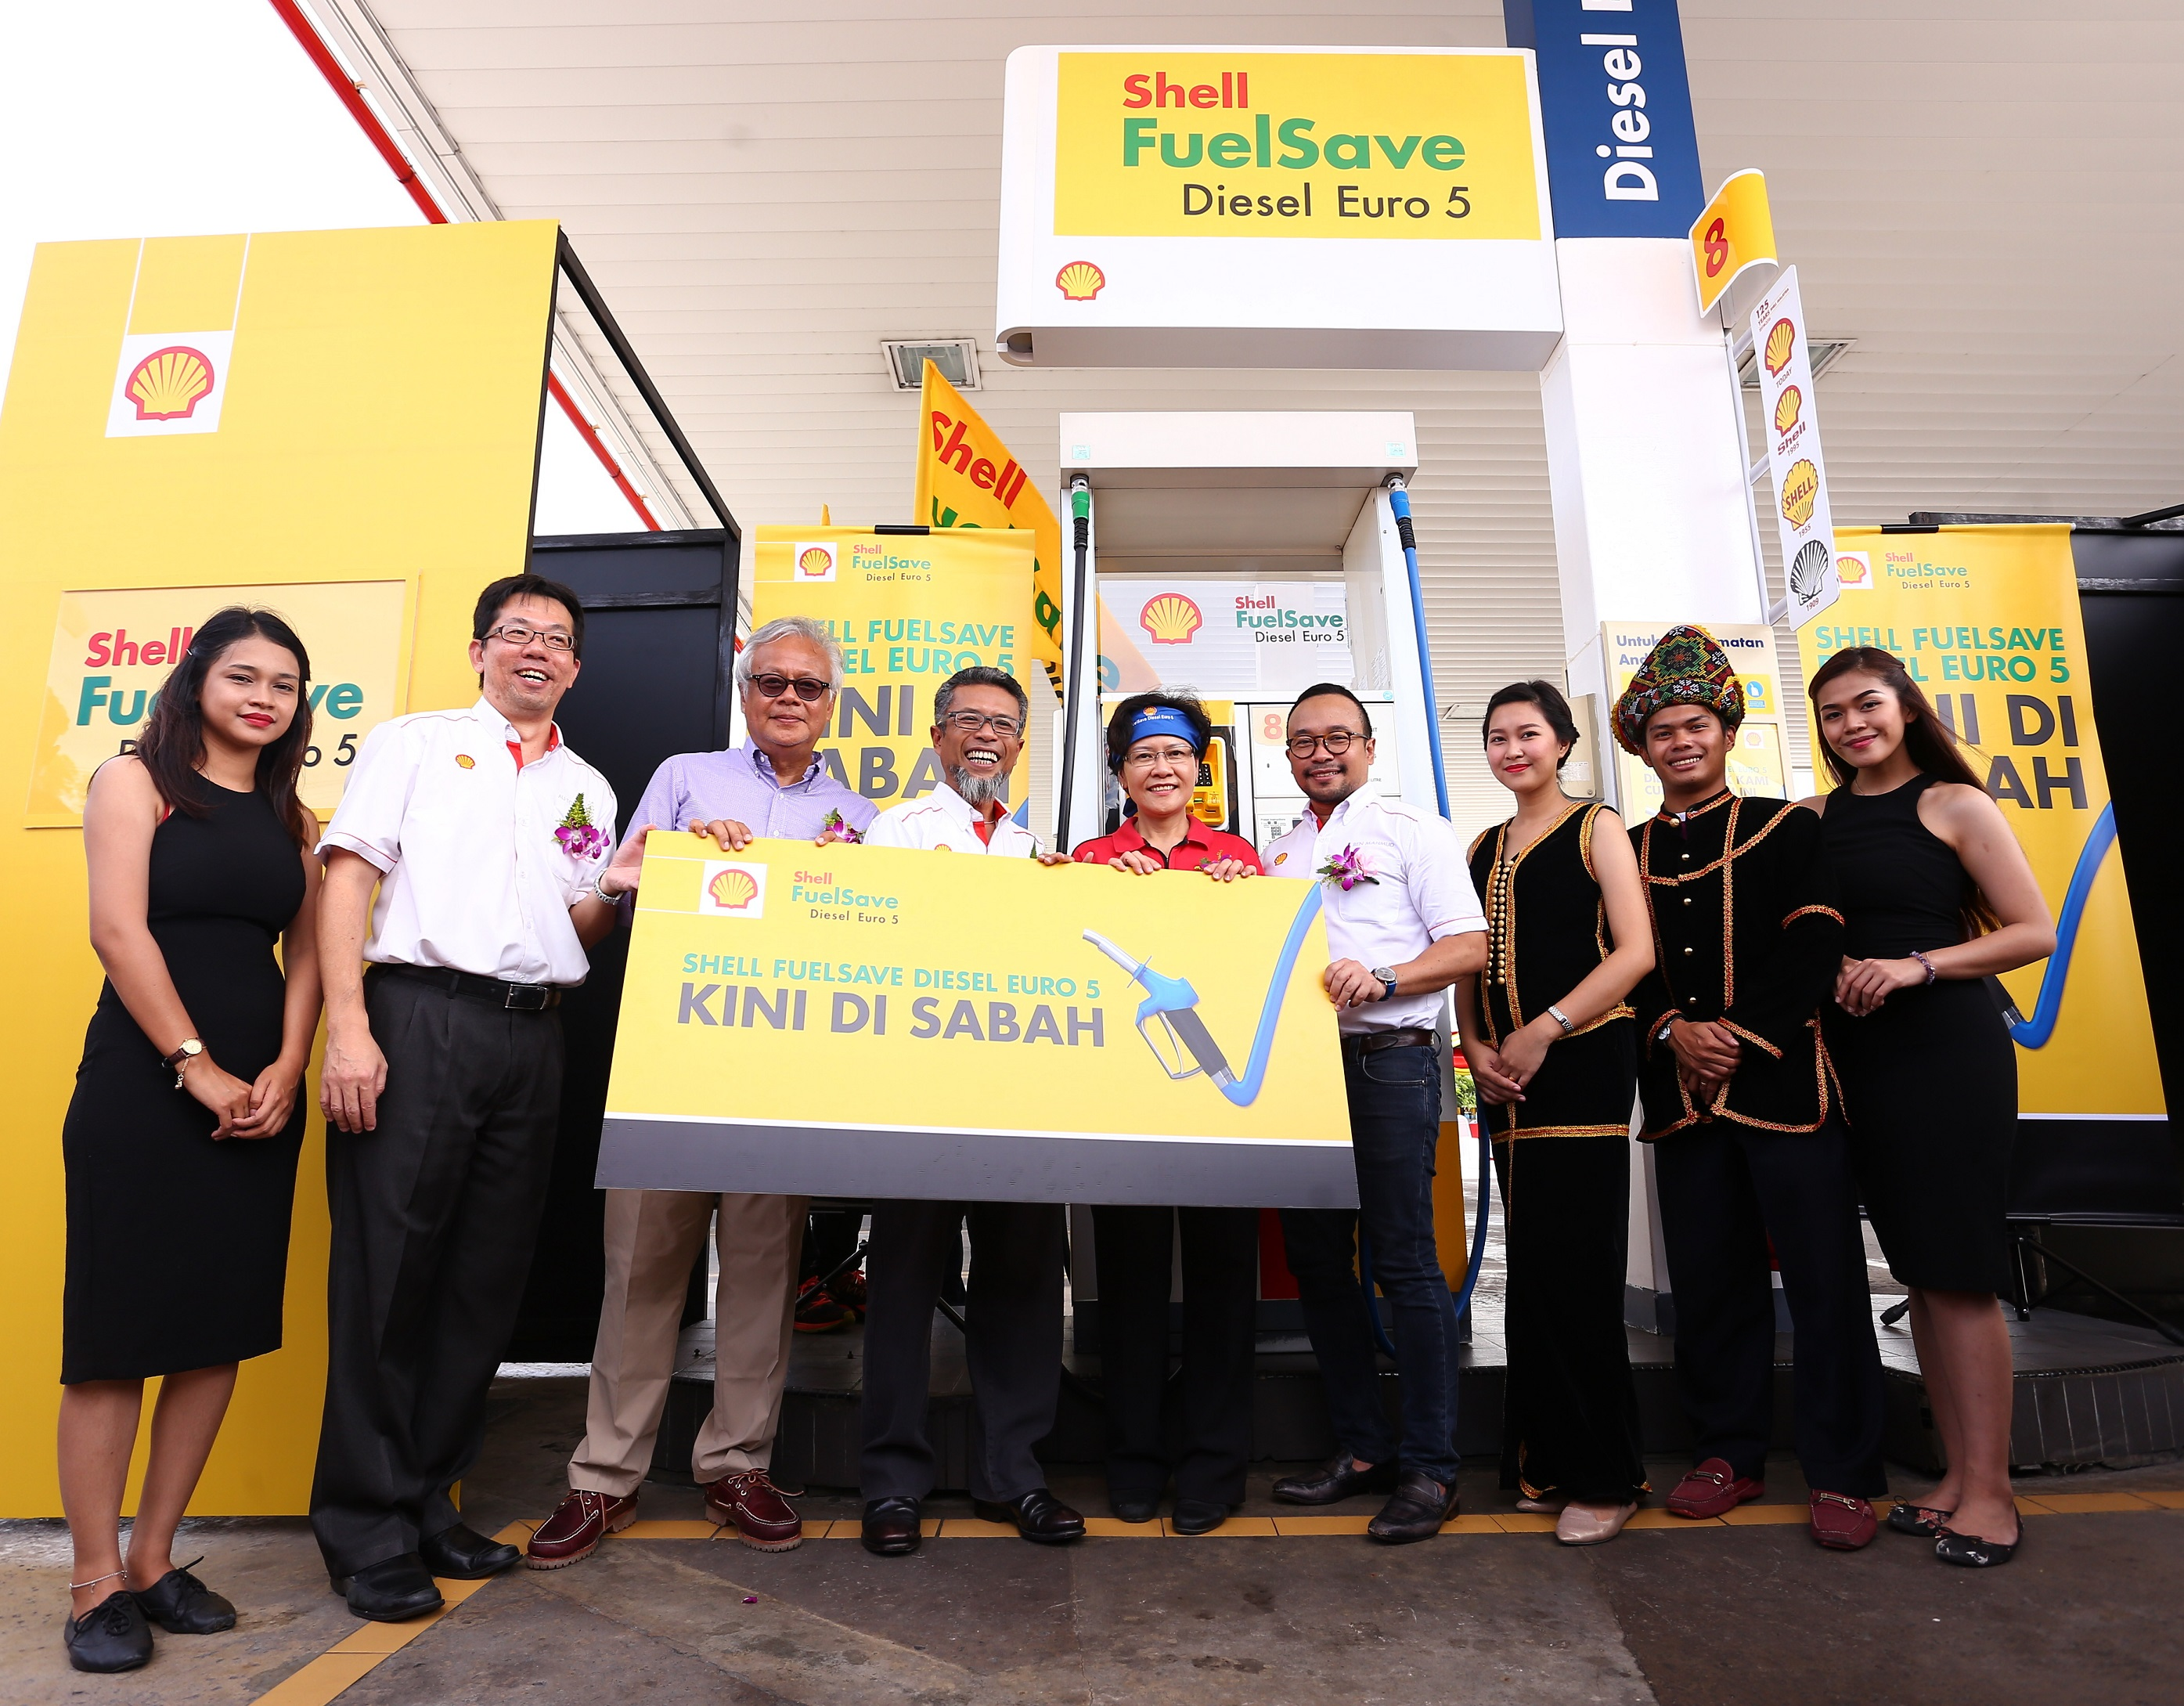 shell fuelsave diesel euro 5 now in sabah first in em. Black Bedroom Furniture Sets. Home Design Ideas